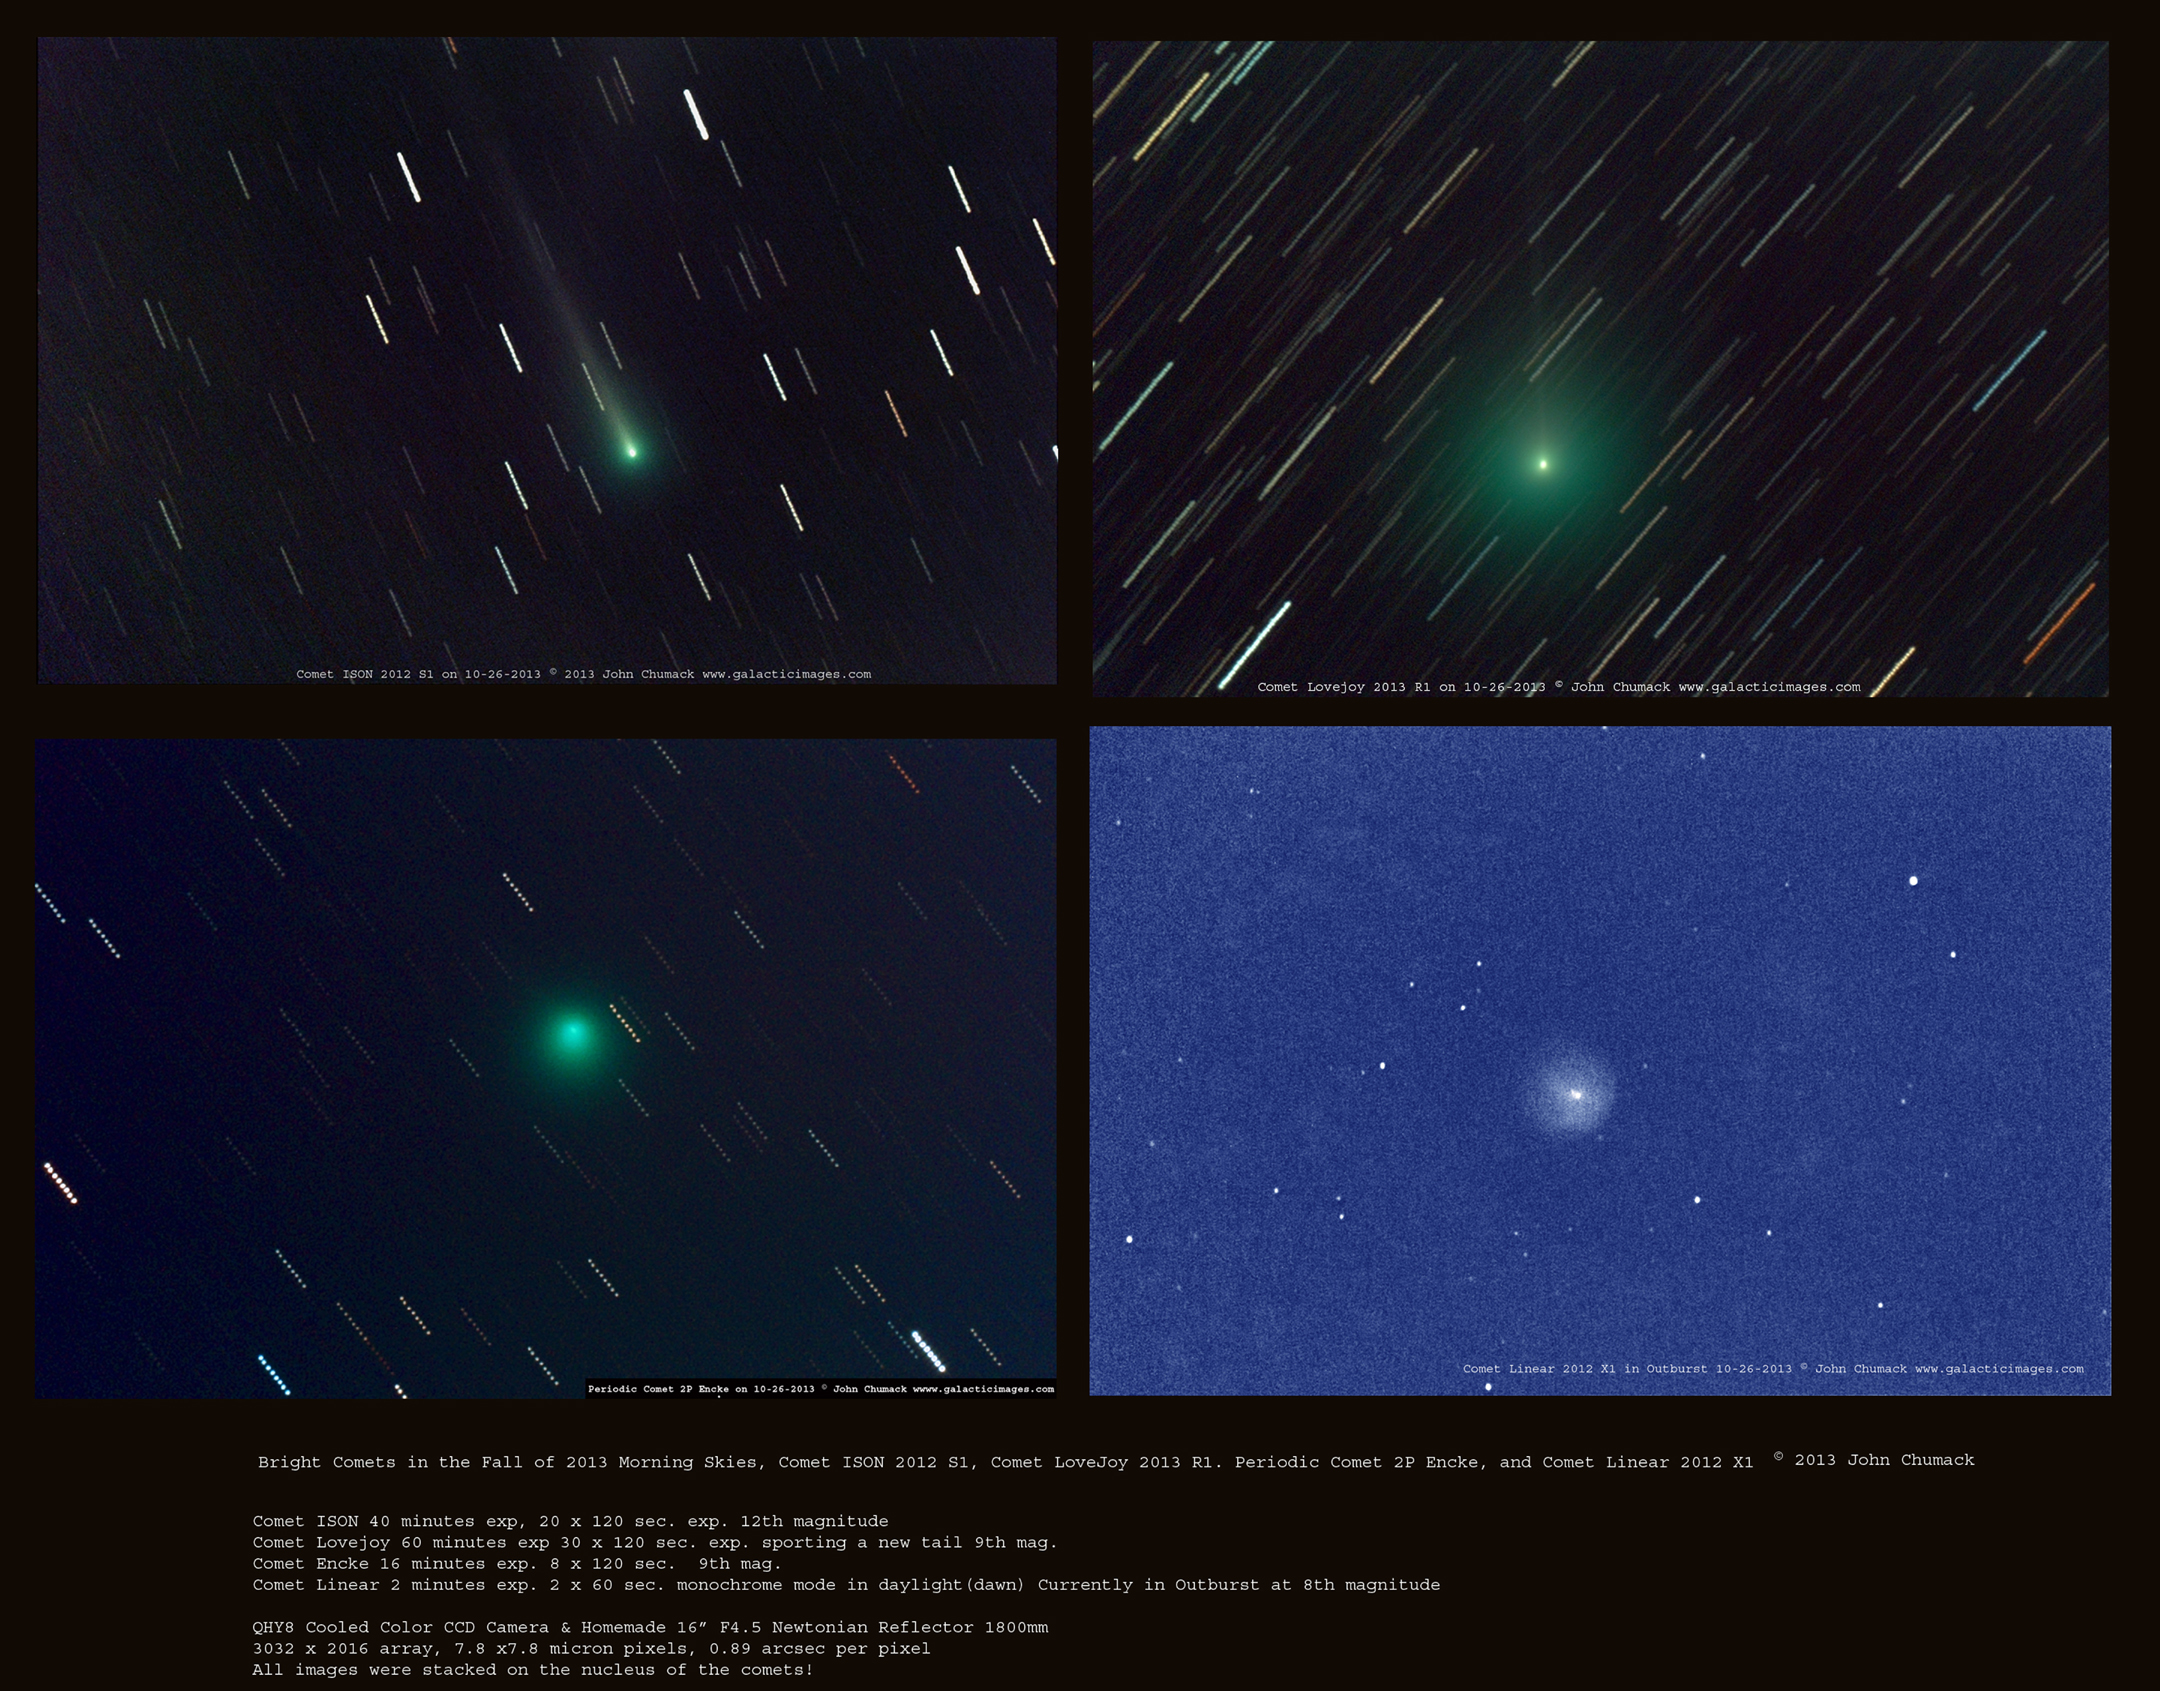 Four Bright Comets Soar in Spectacular Photo